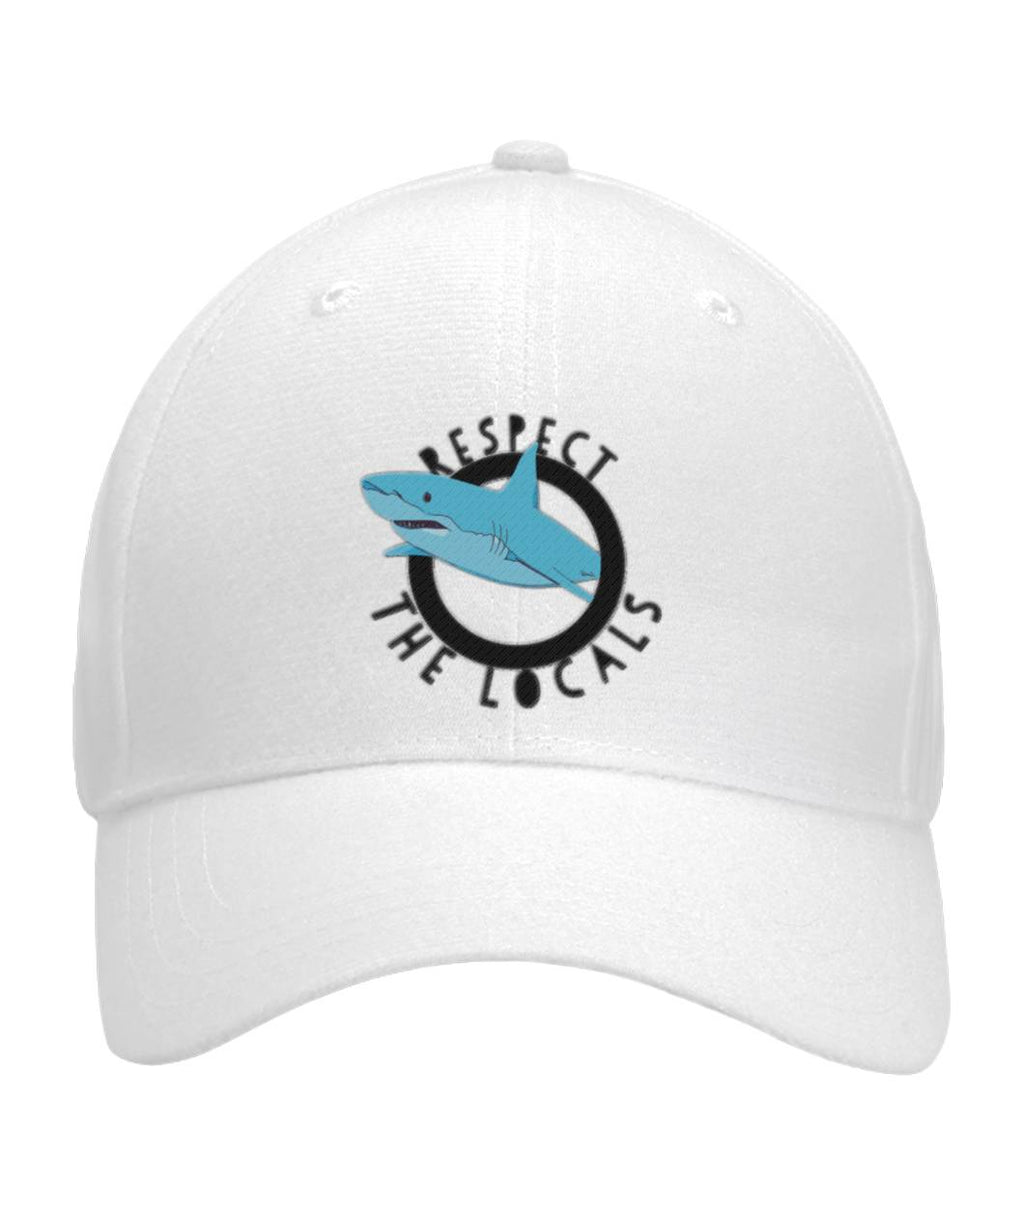 Respect the Locals Baseball Cap - Connected Clothing Company - 10% of profits donated